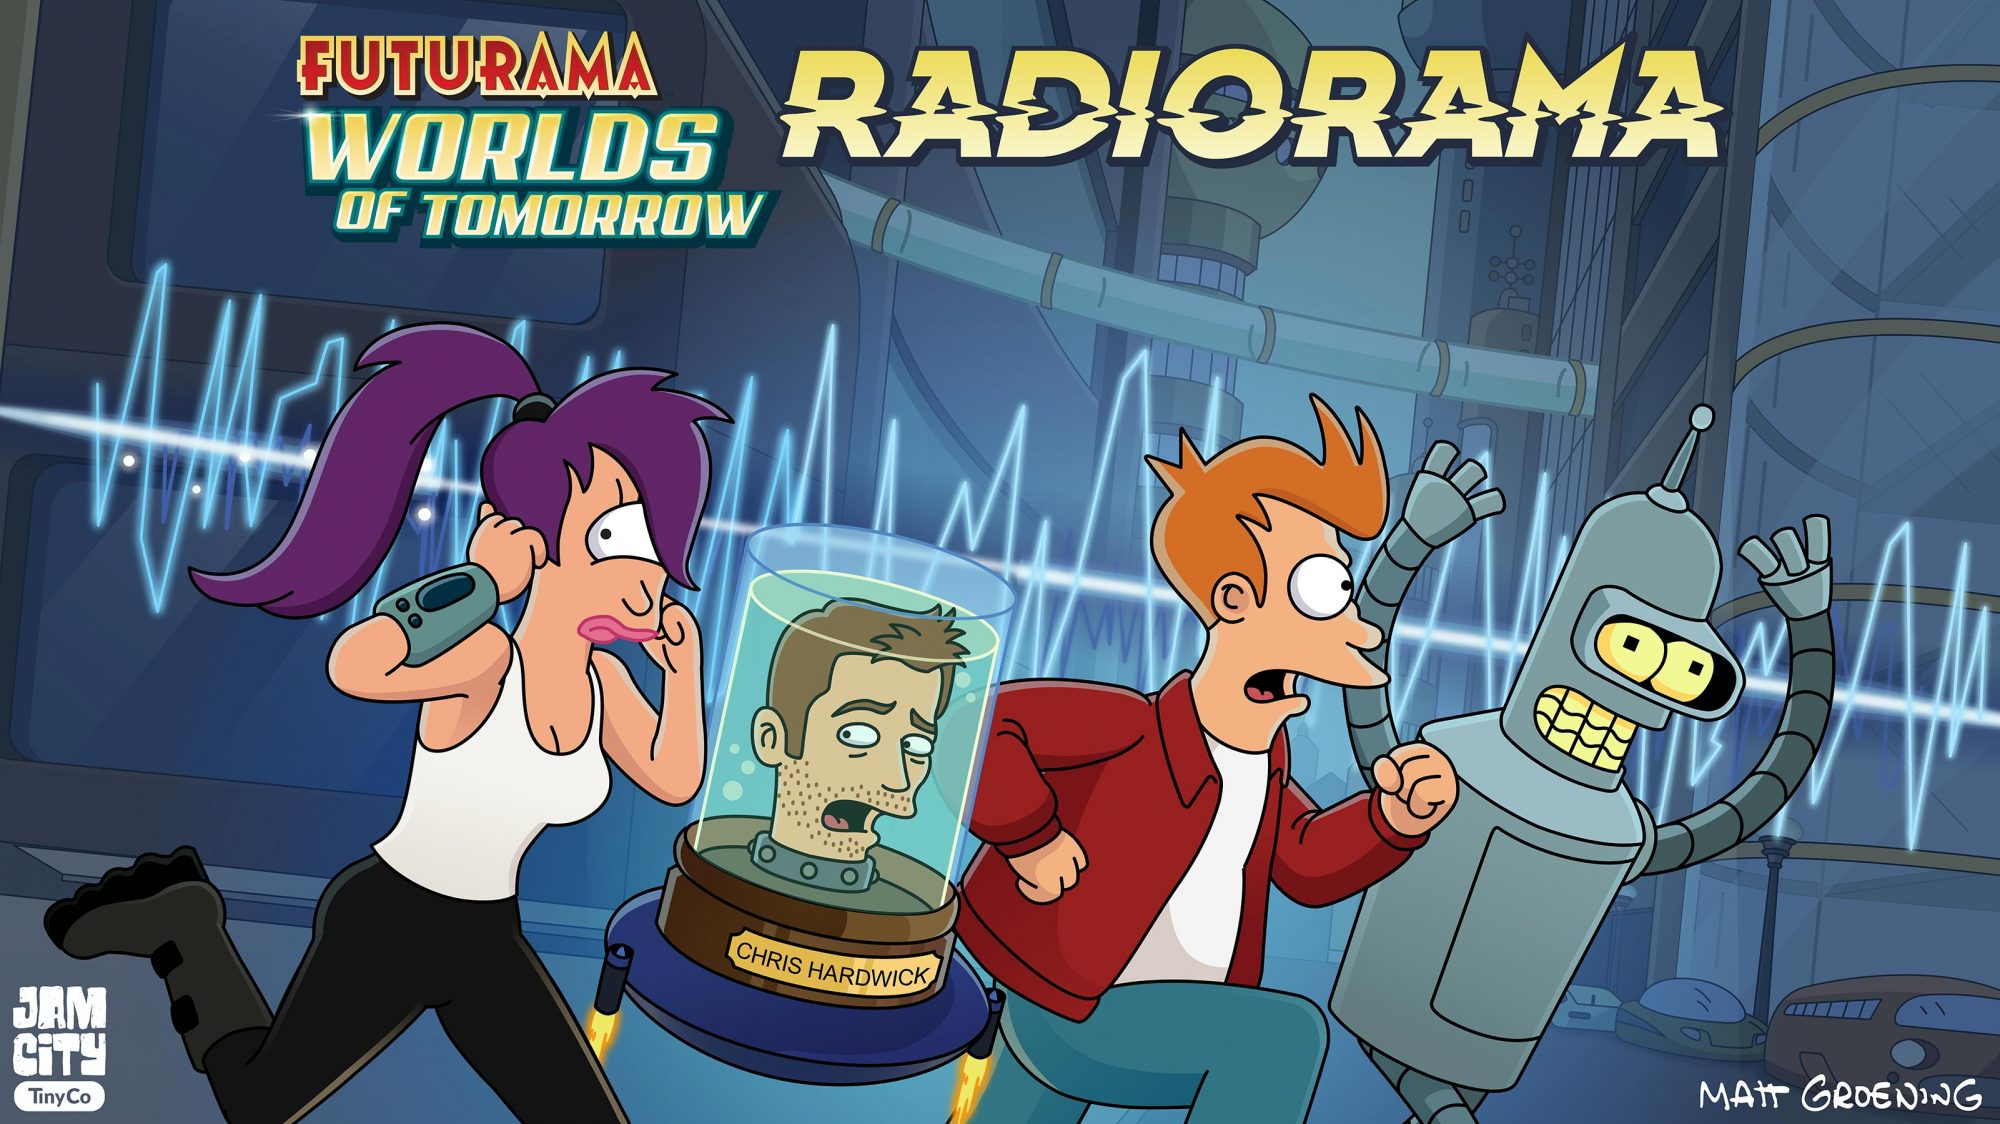 FUTURAMA Key Art CR: Fox